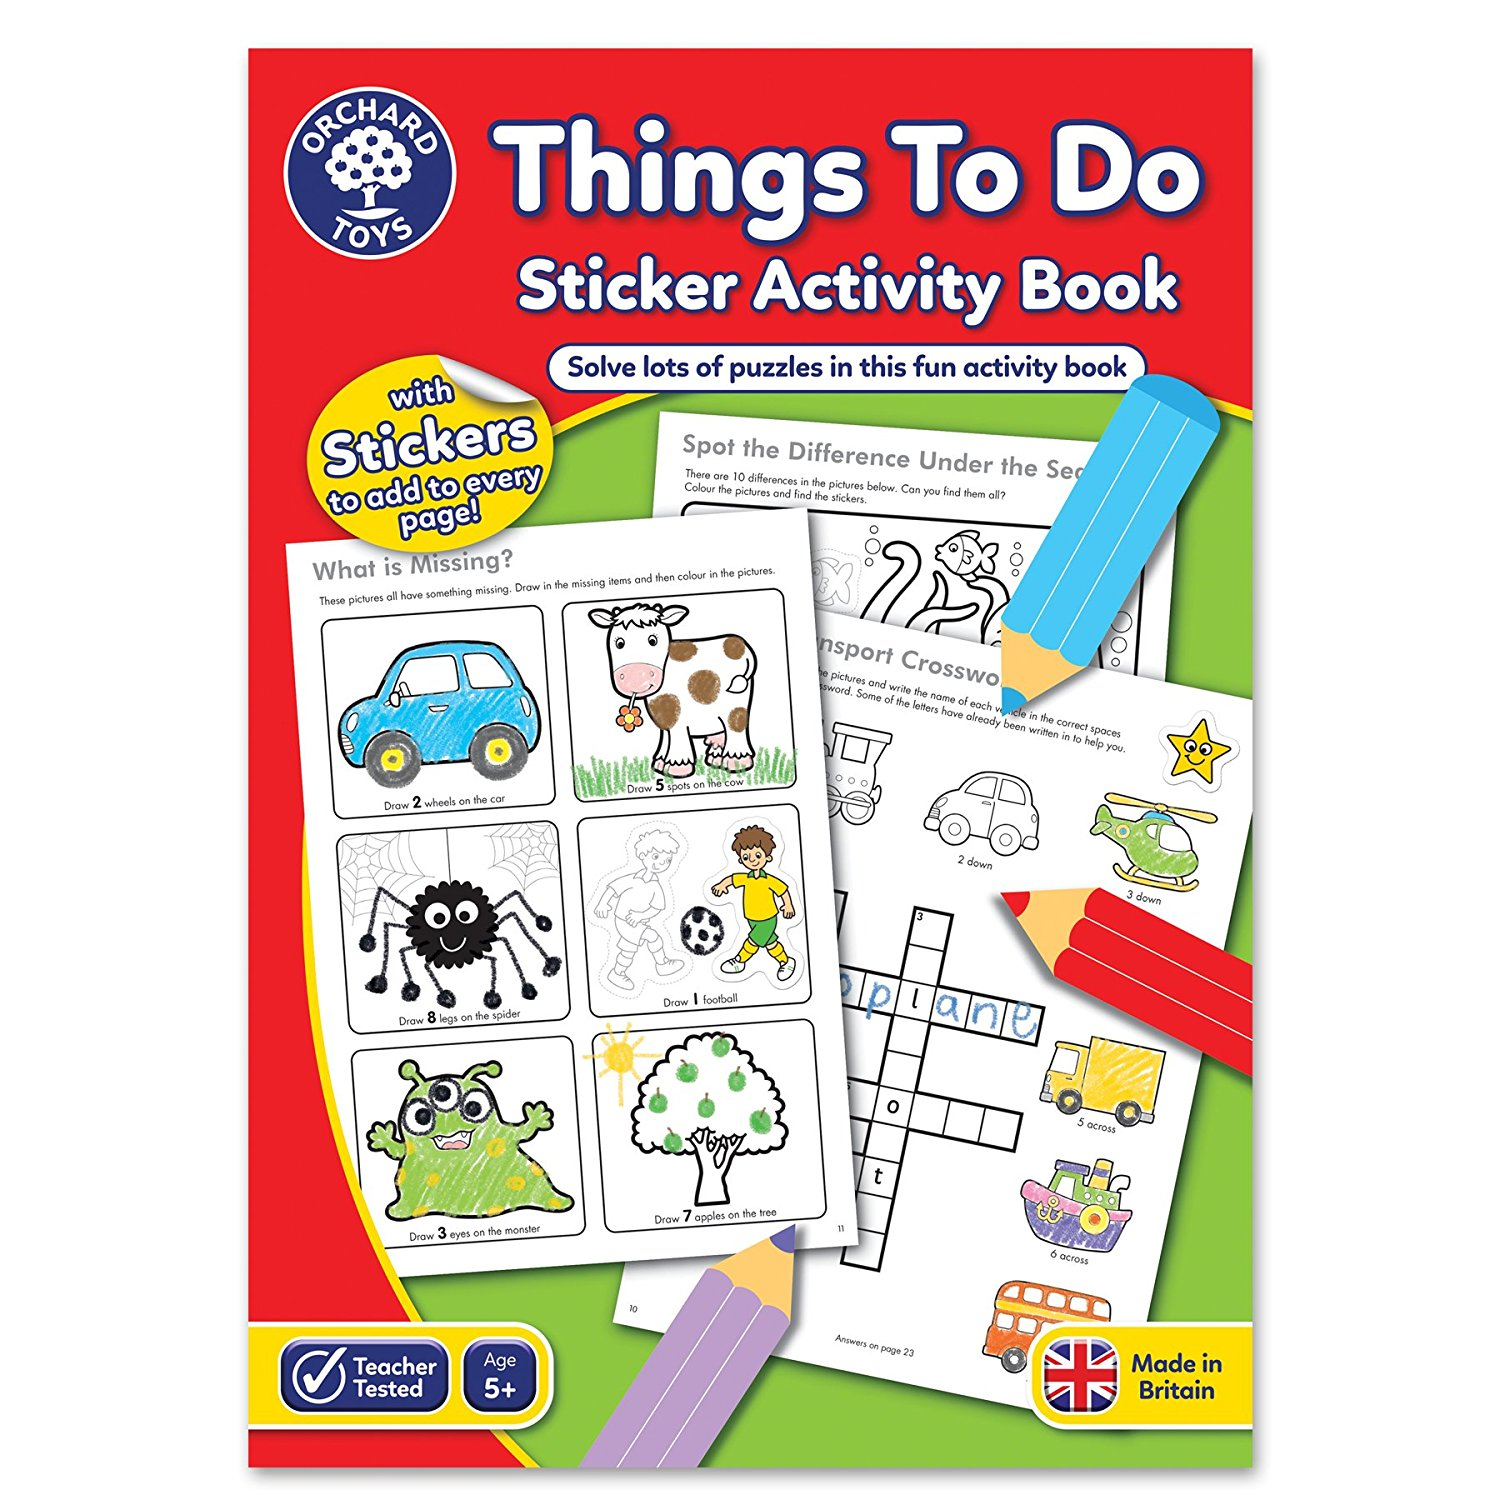 Things To Do Sticker Activity Book for children in S A